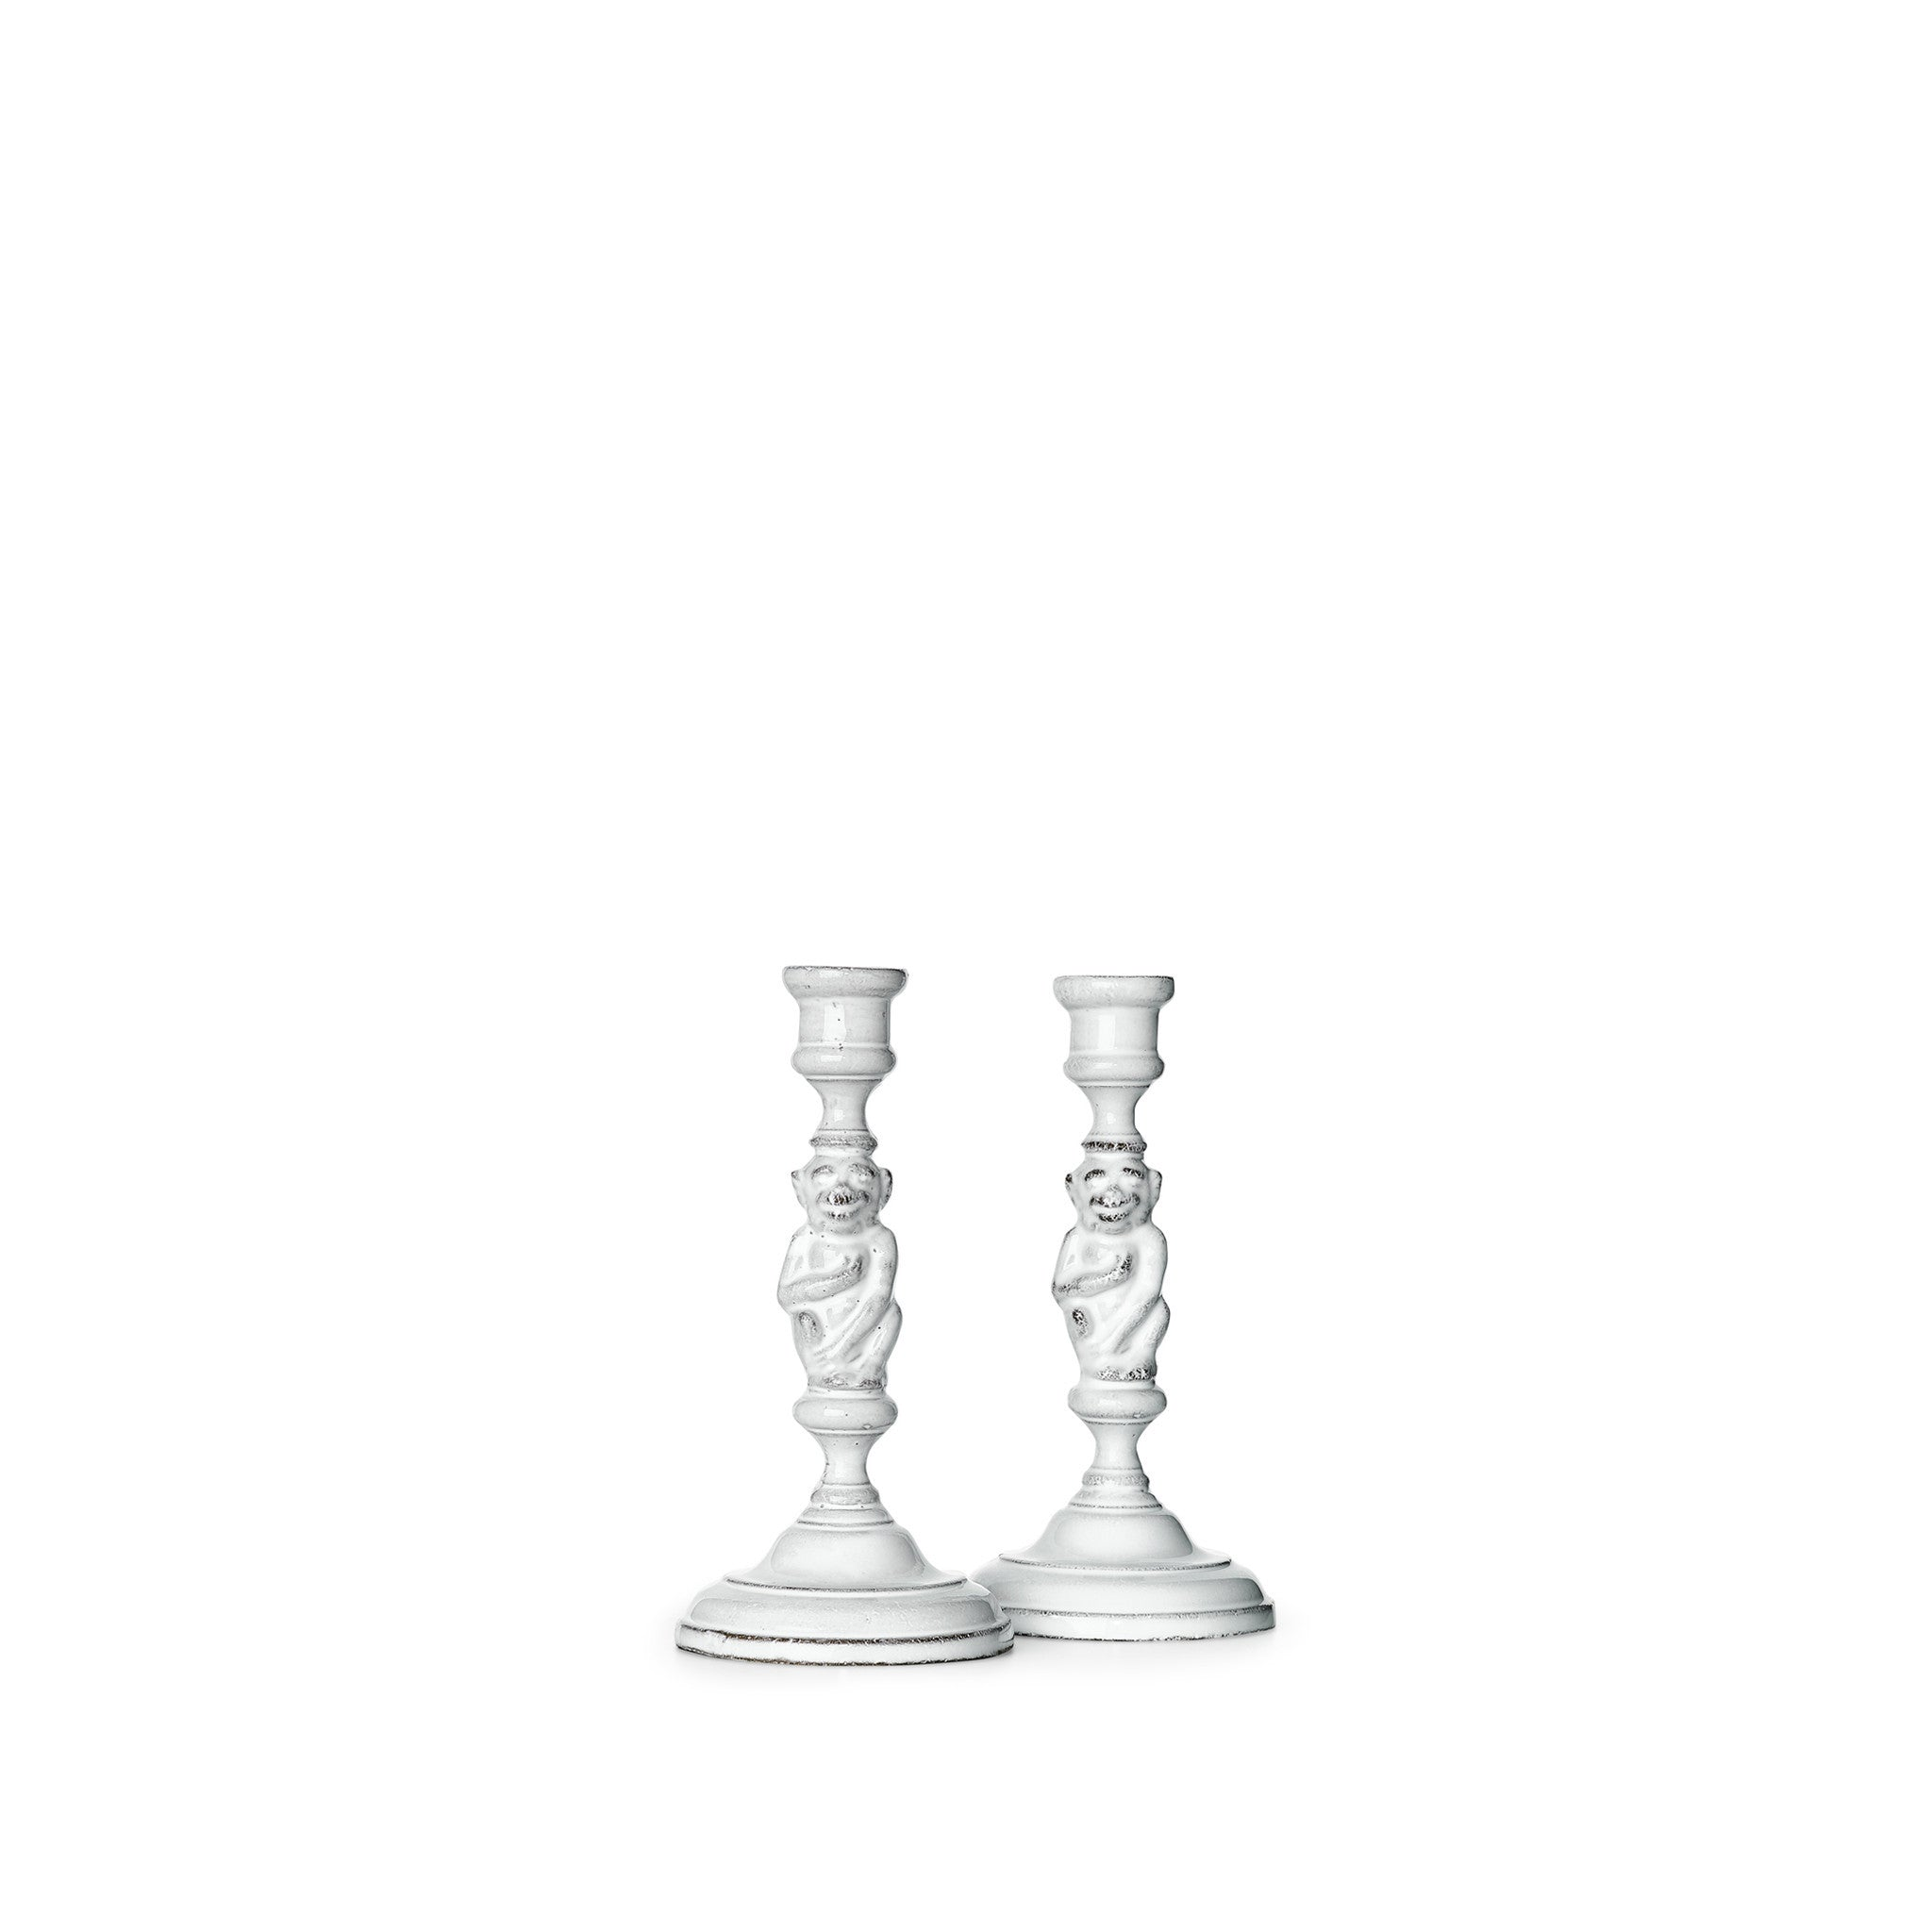 Pair of Monkey Candlesticks by Astier de Villatte